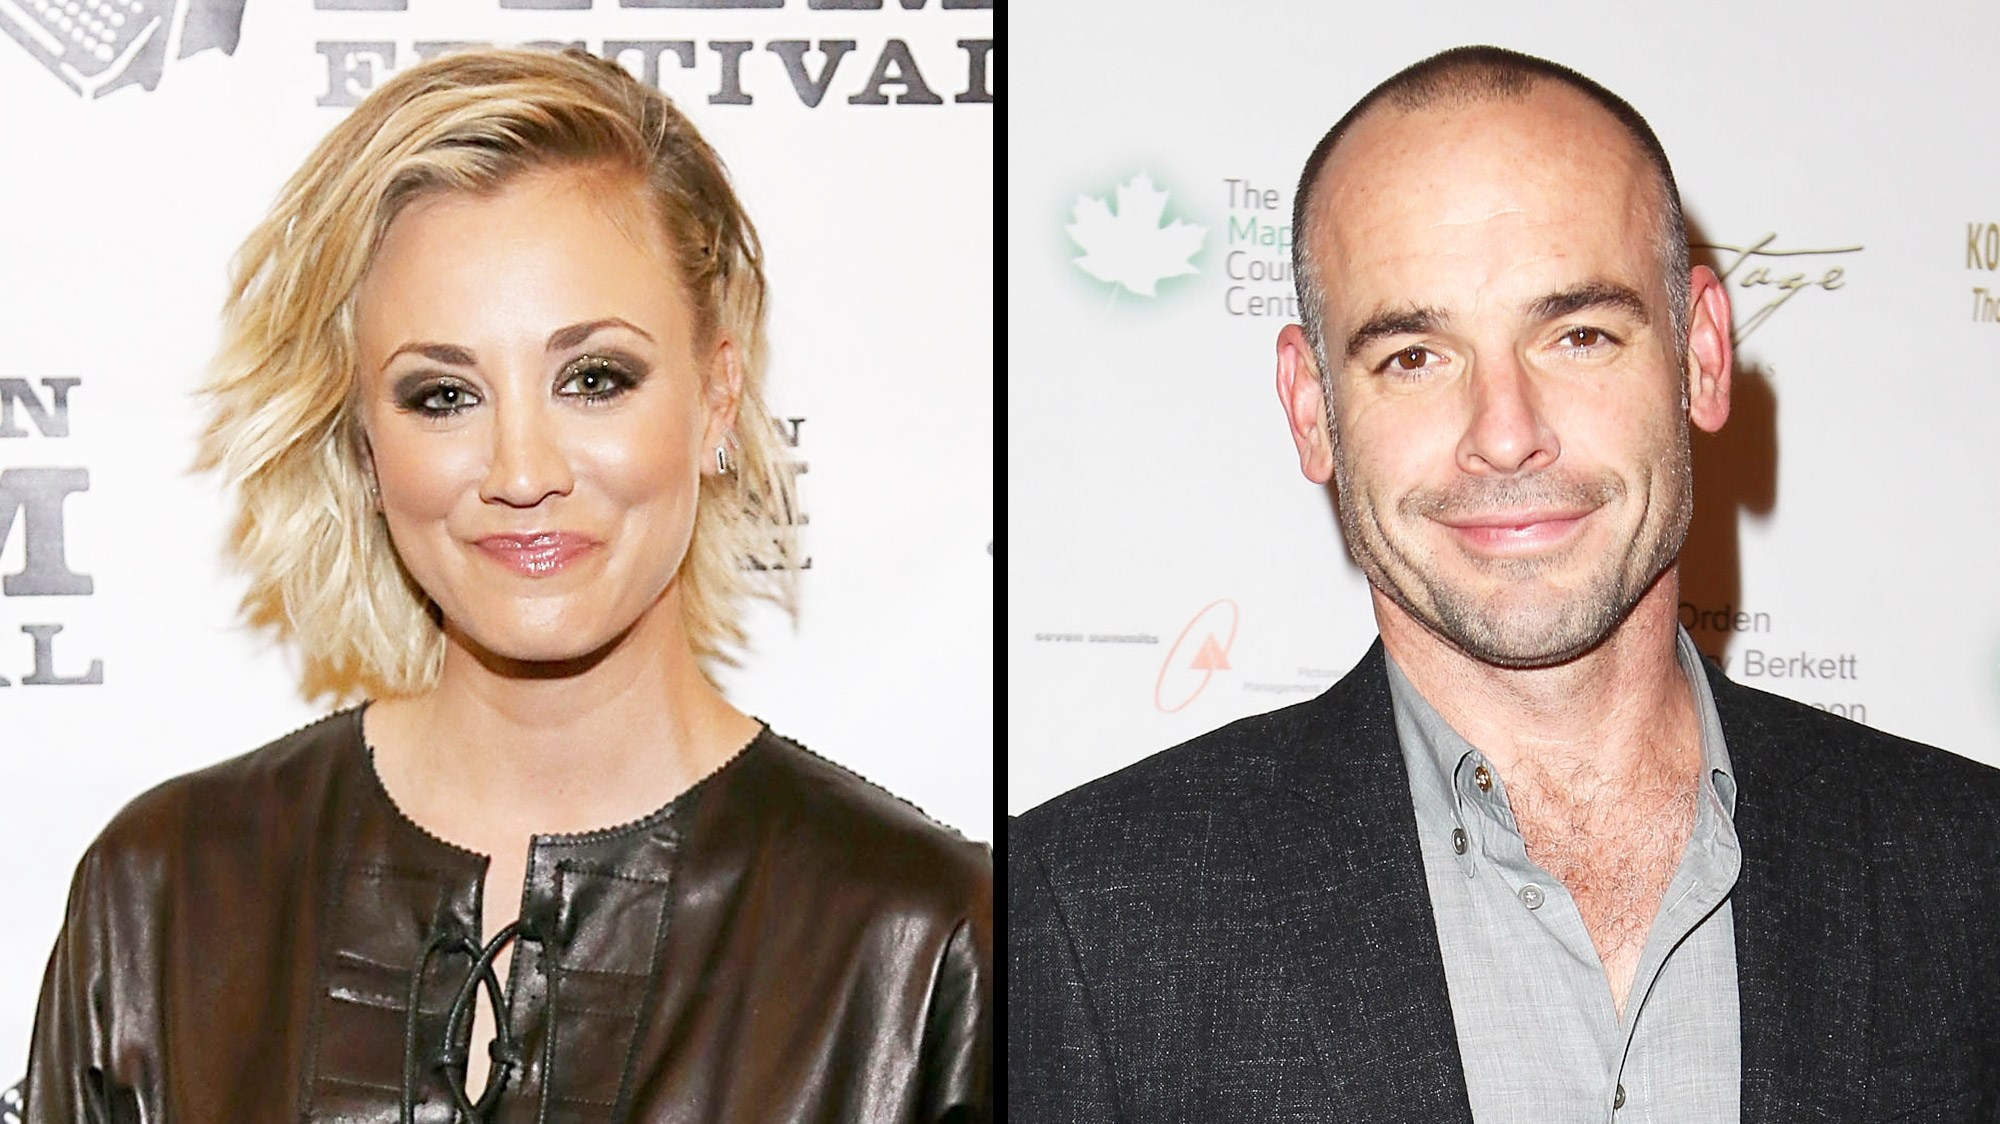 Kaley Cuoco and Paul Blackthorne